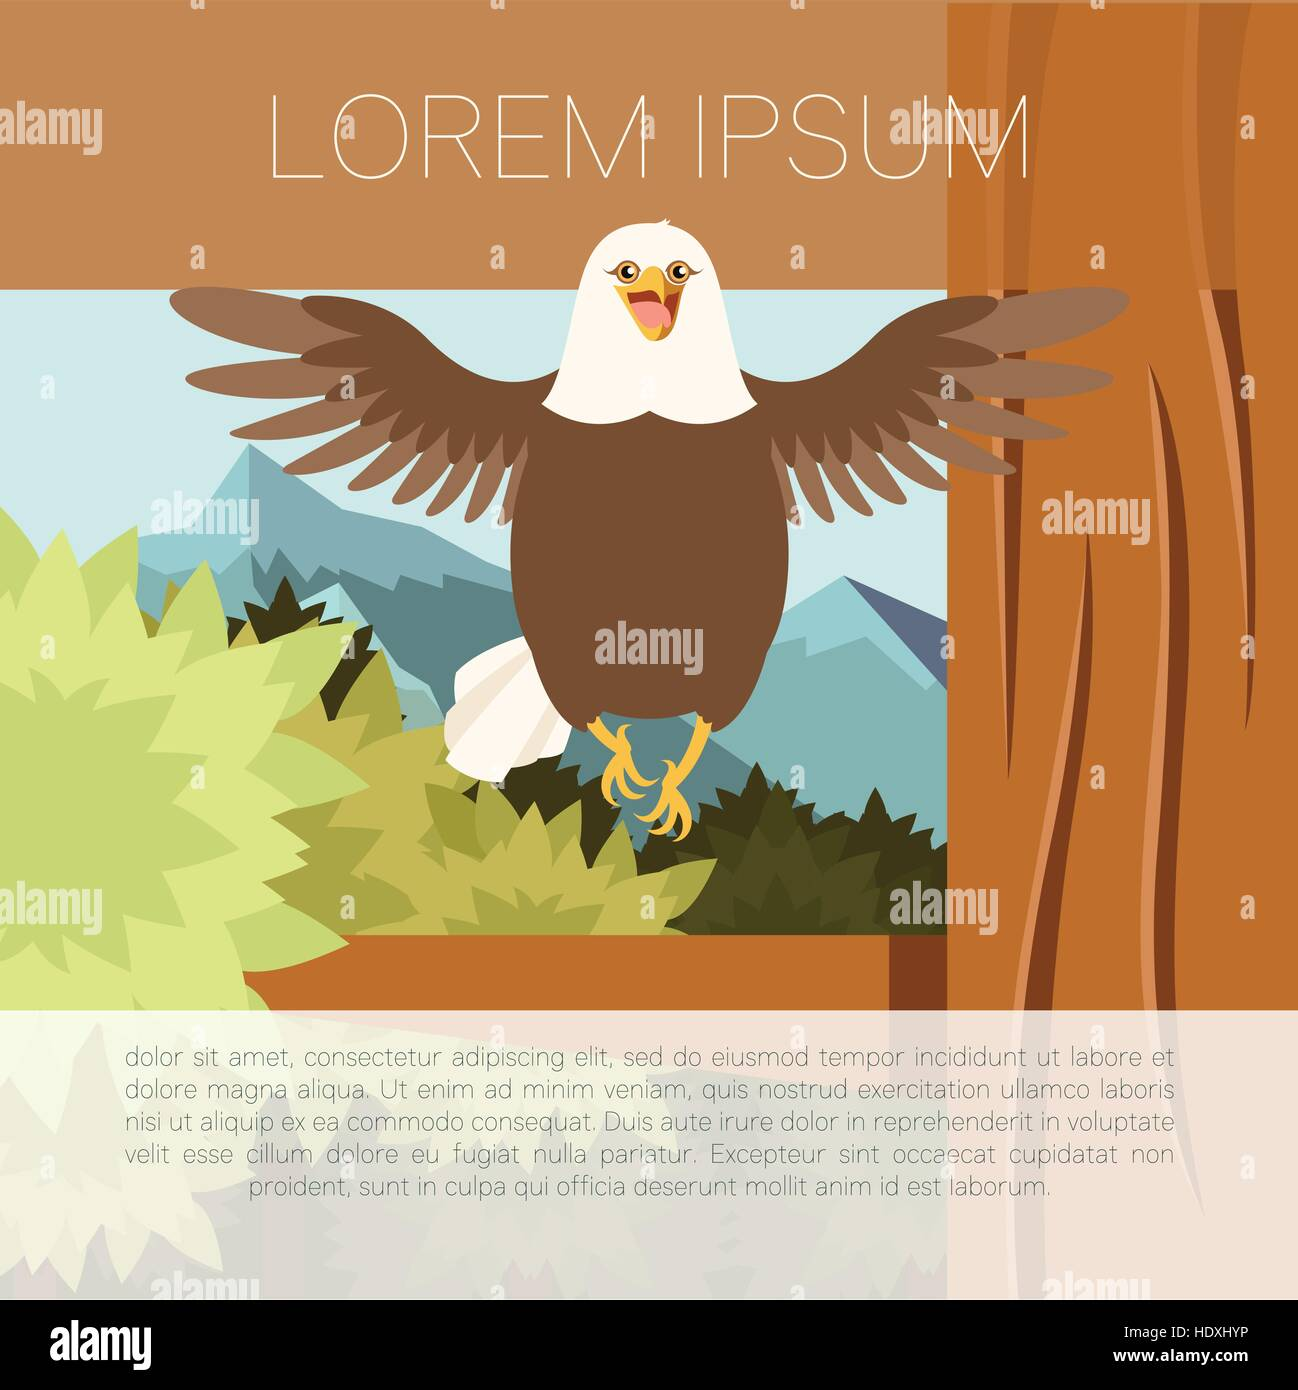 Dignity Vector Vectors Stock Photos Bald Eagle Diagram Along With Golden Related Keywords Image Of The Happy On Tree Flat Background